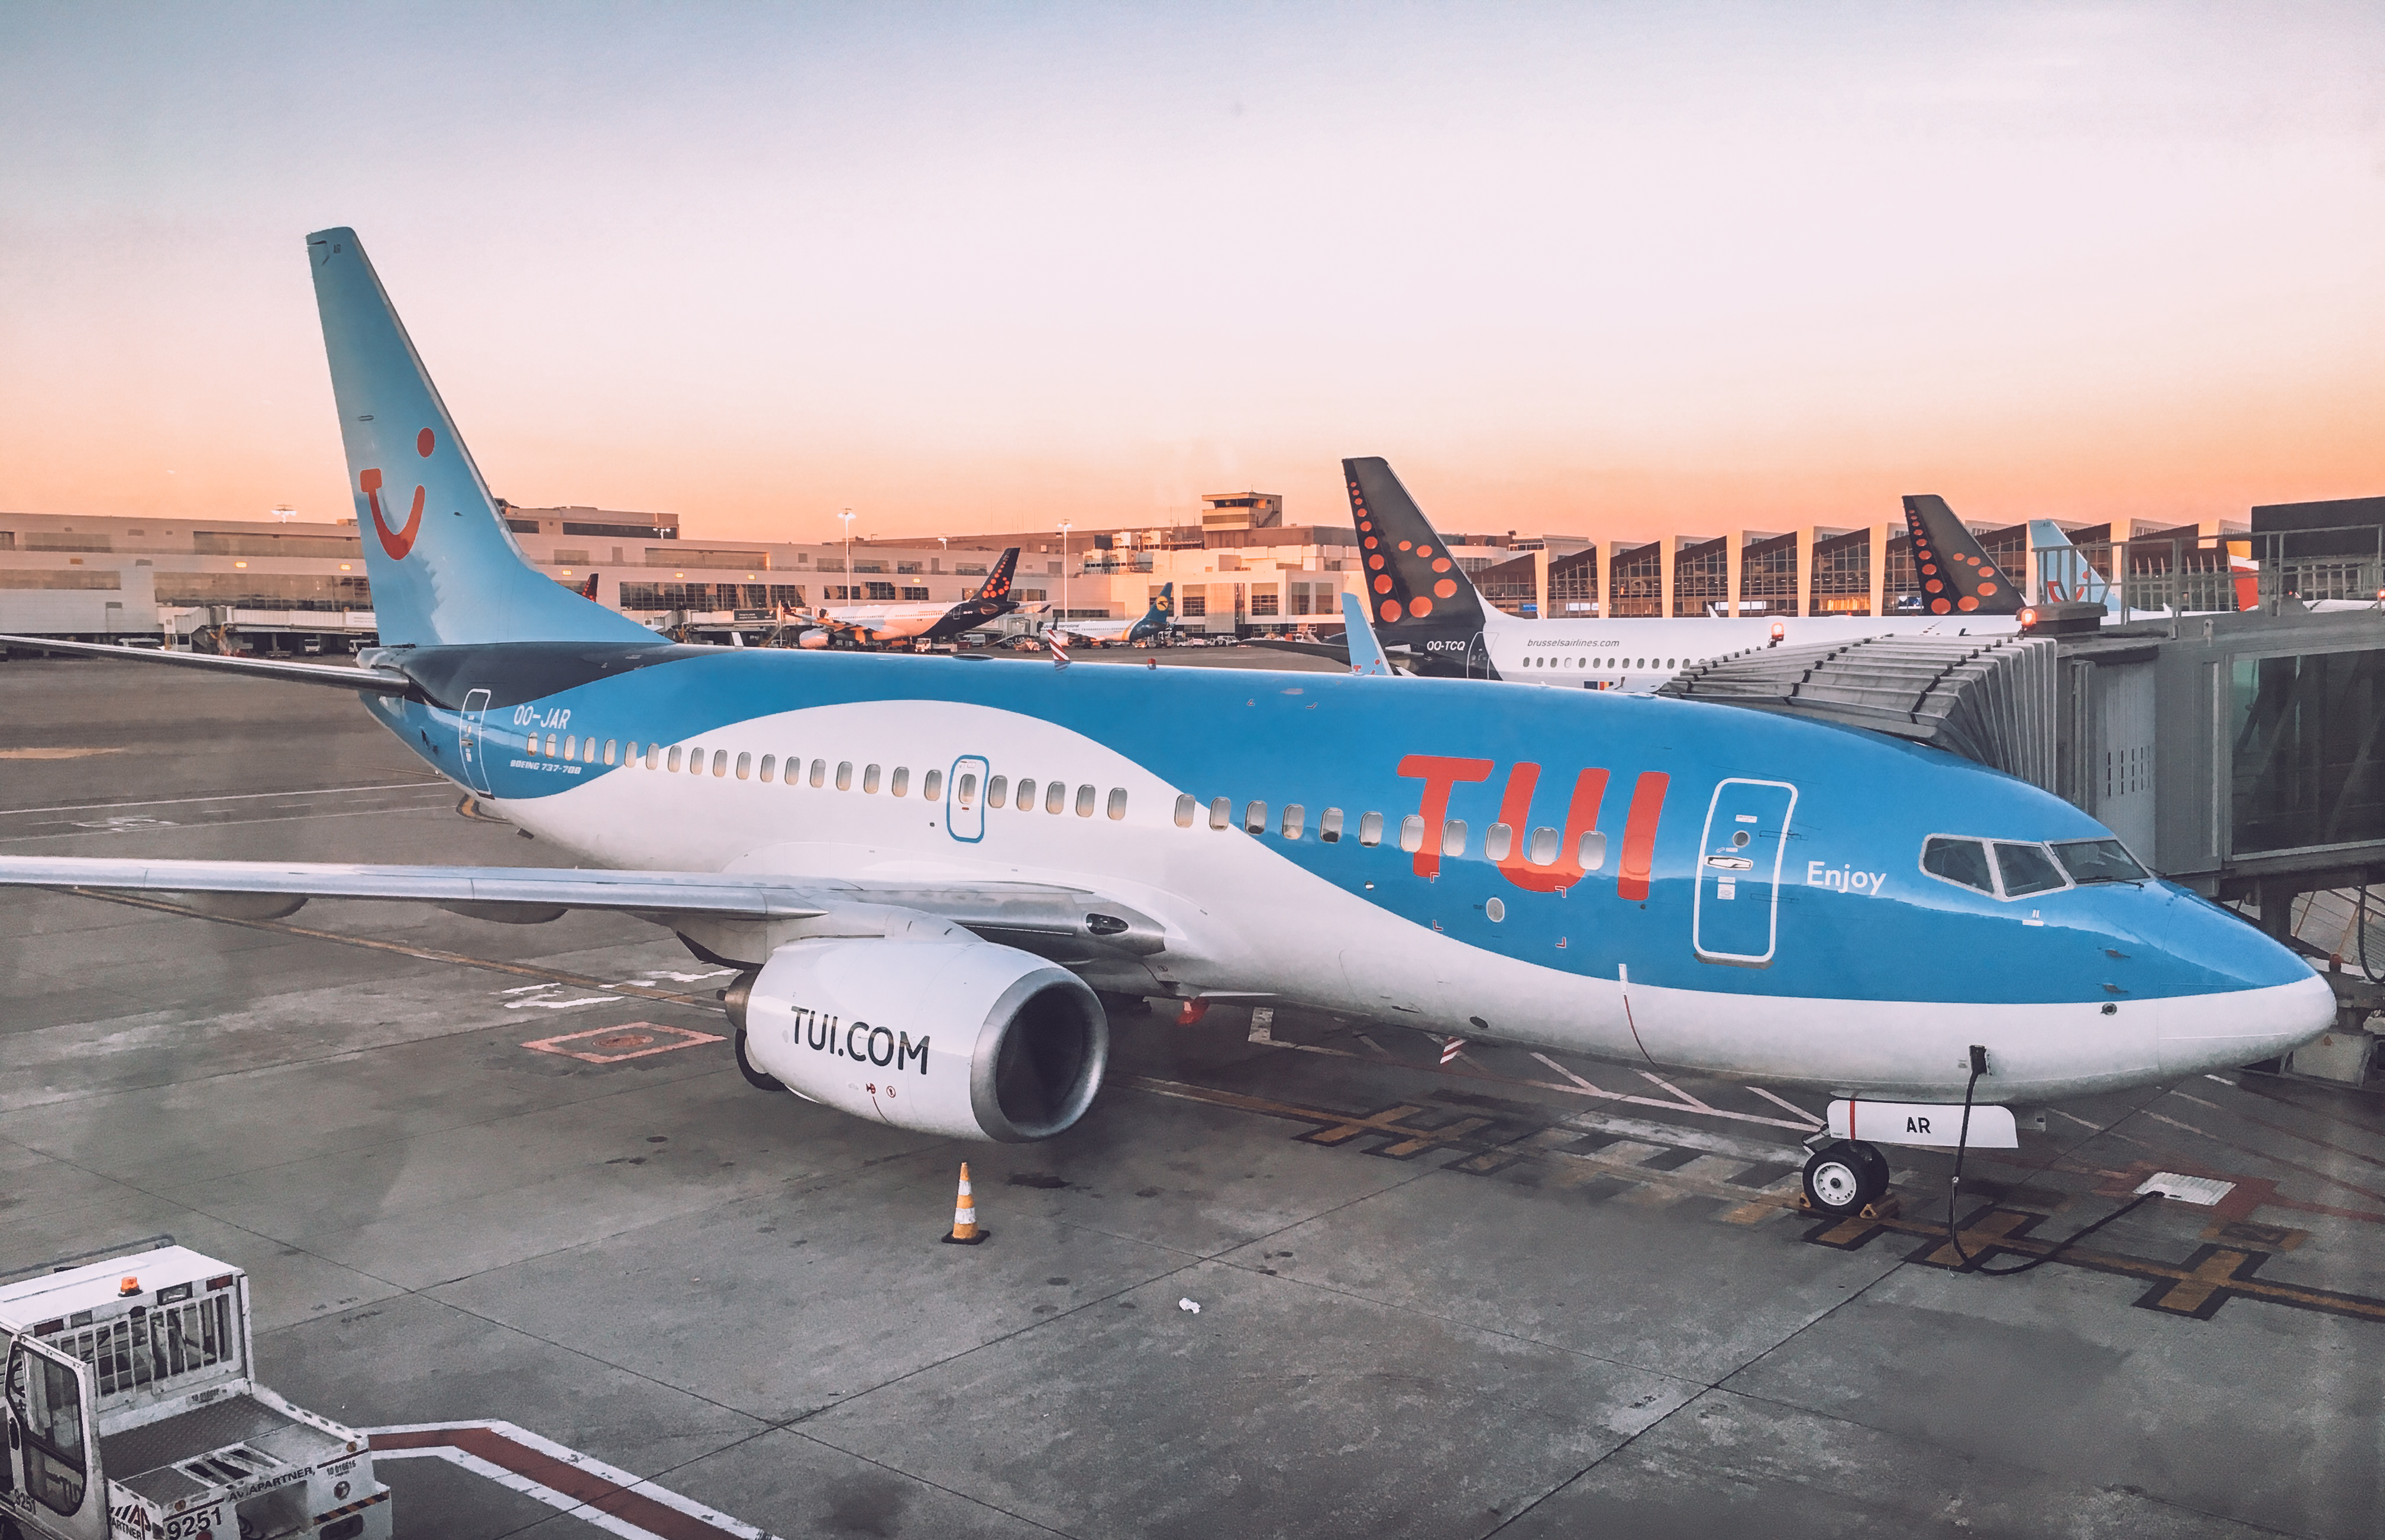 aircraft of the TUI GROUP, a giant for global tourism